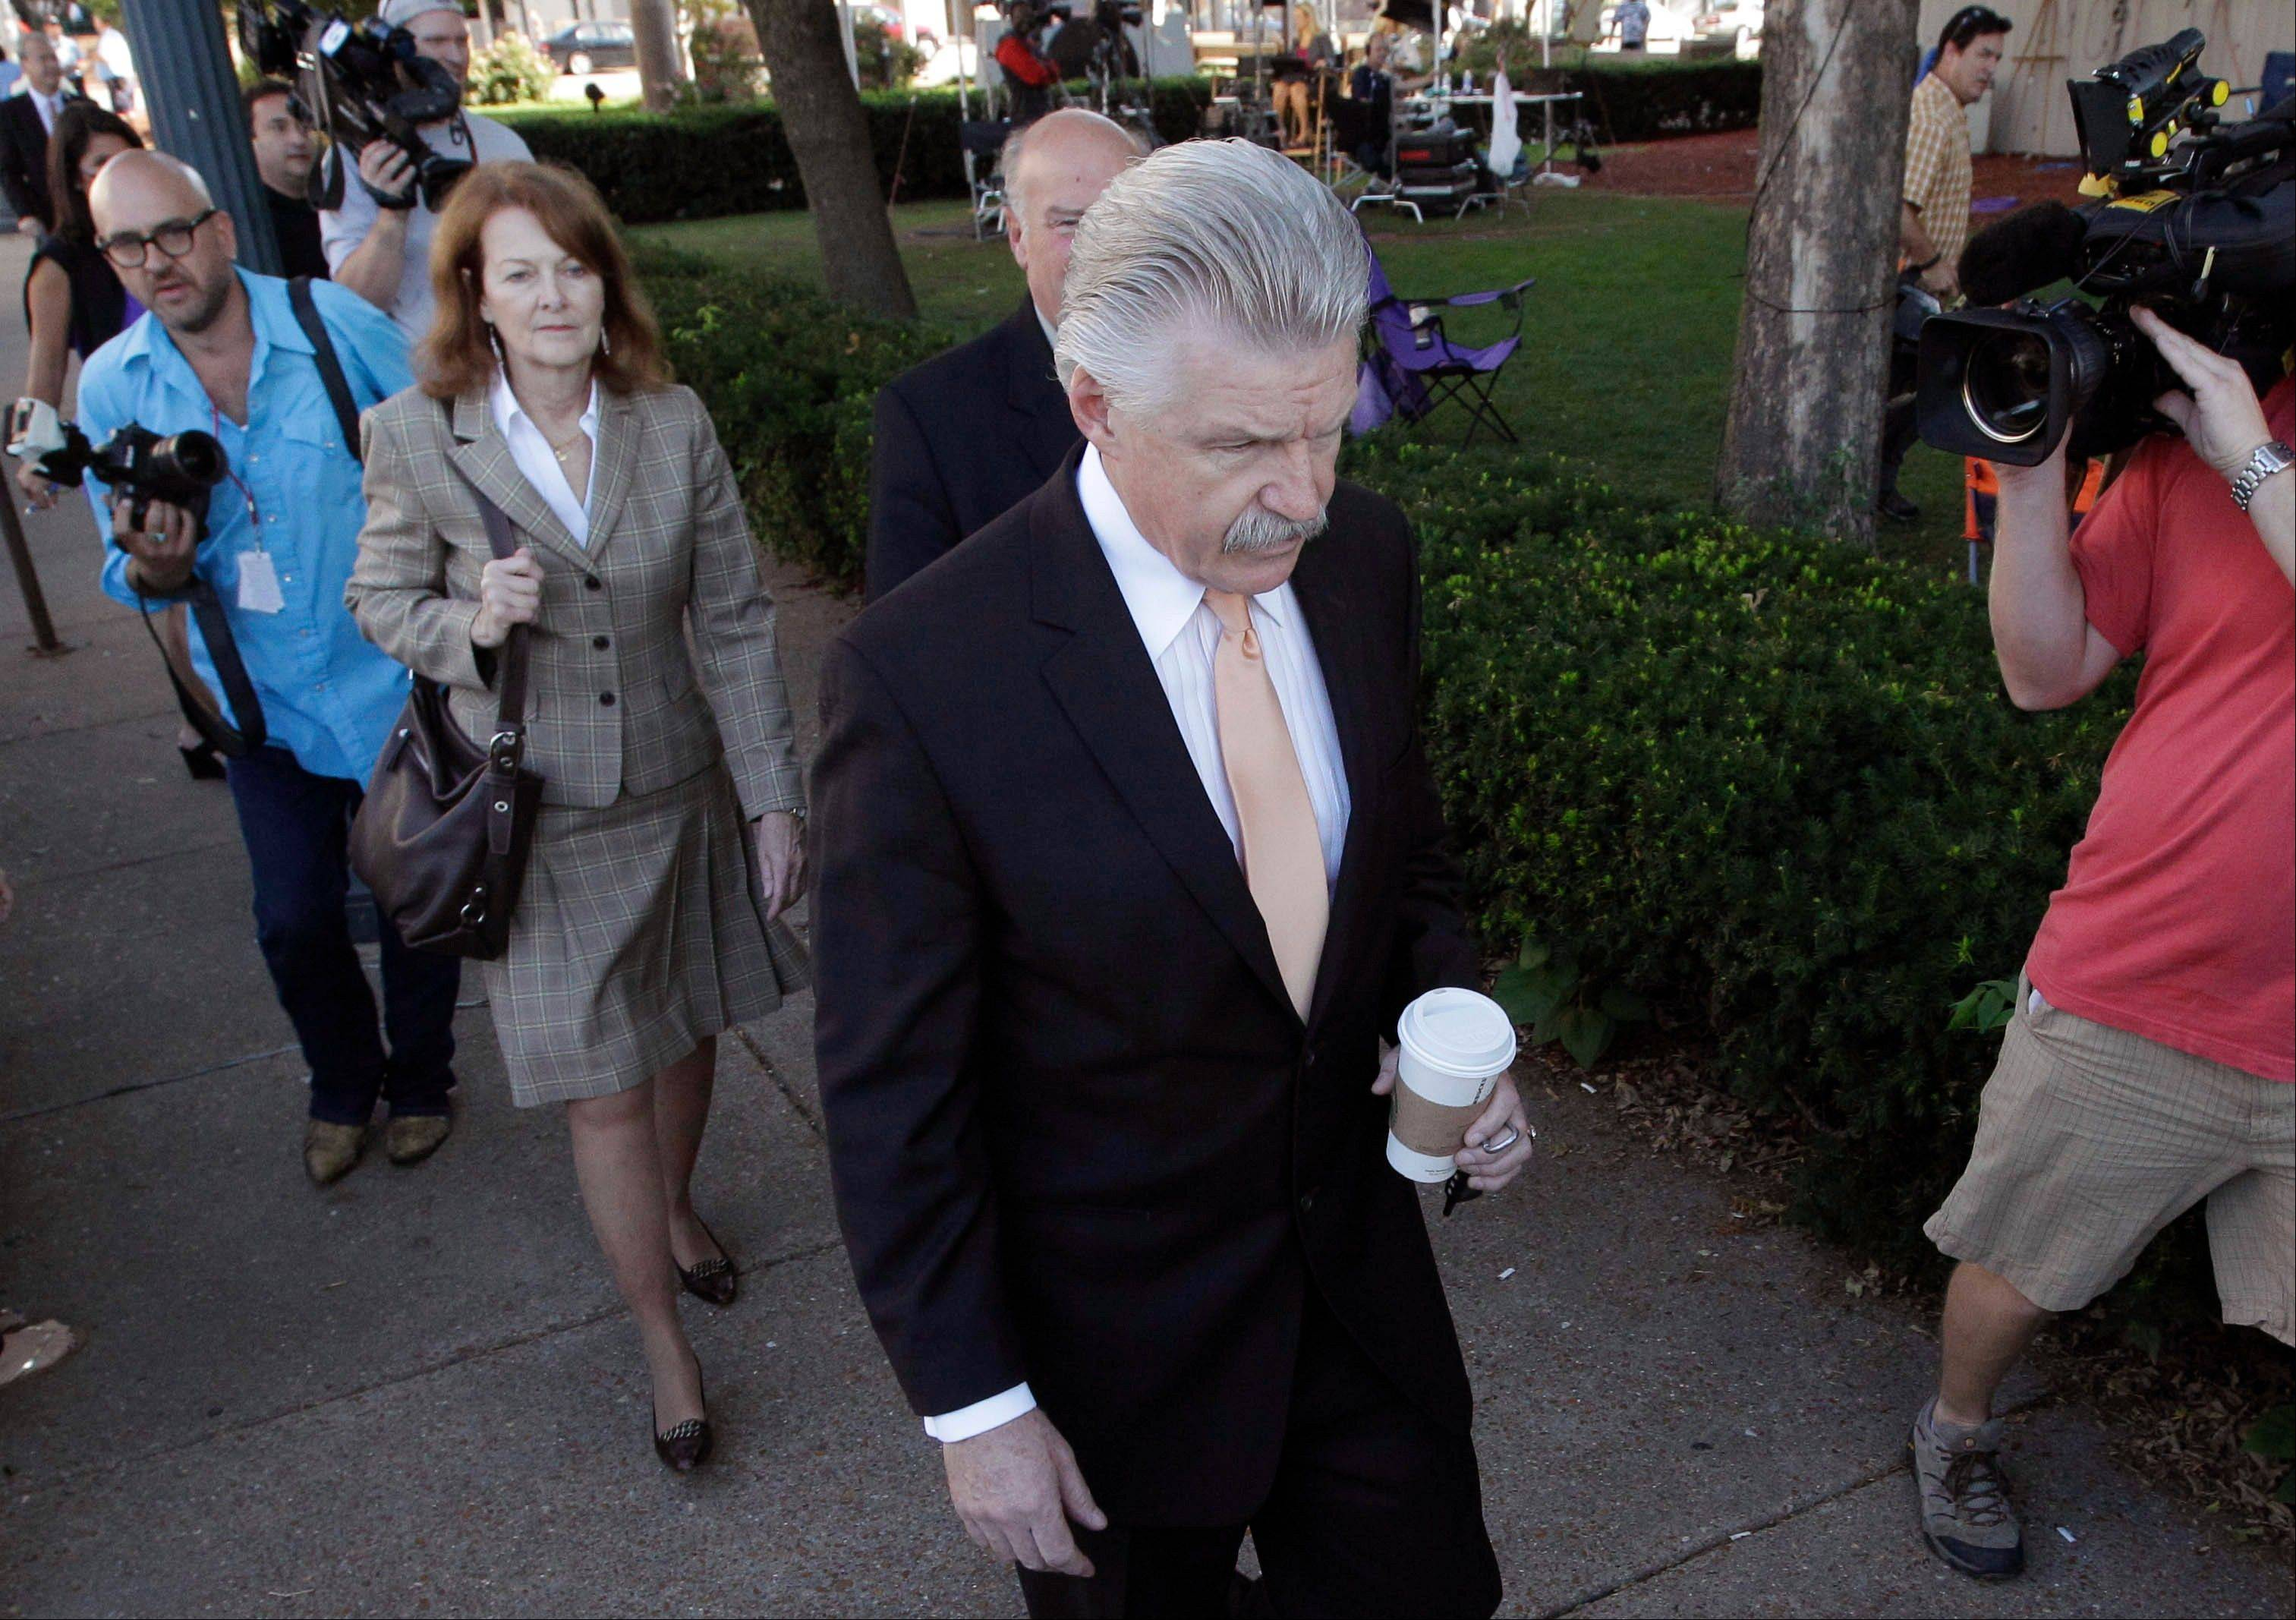 Will County States Attorney James Glasgow walks to the Will County Courthouse during the second day of jury deliberations in the Drew Peterson murder trial, Thursday, Sept. 6, 2012, in Joliet, Ill.